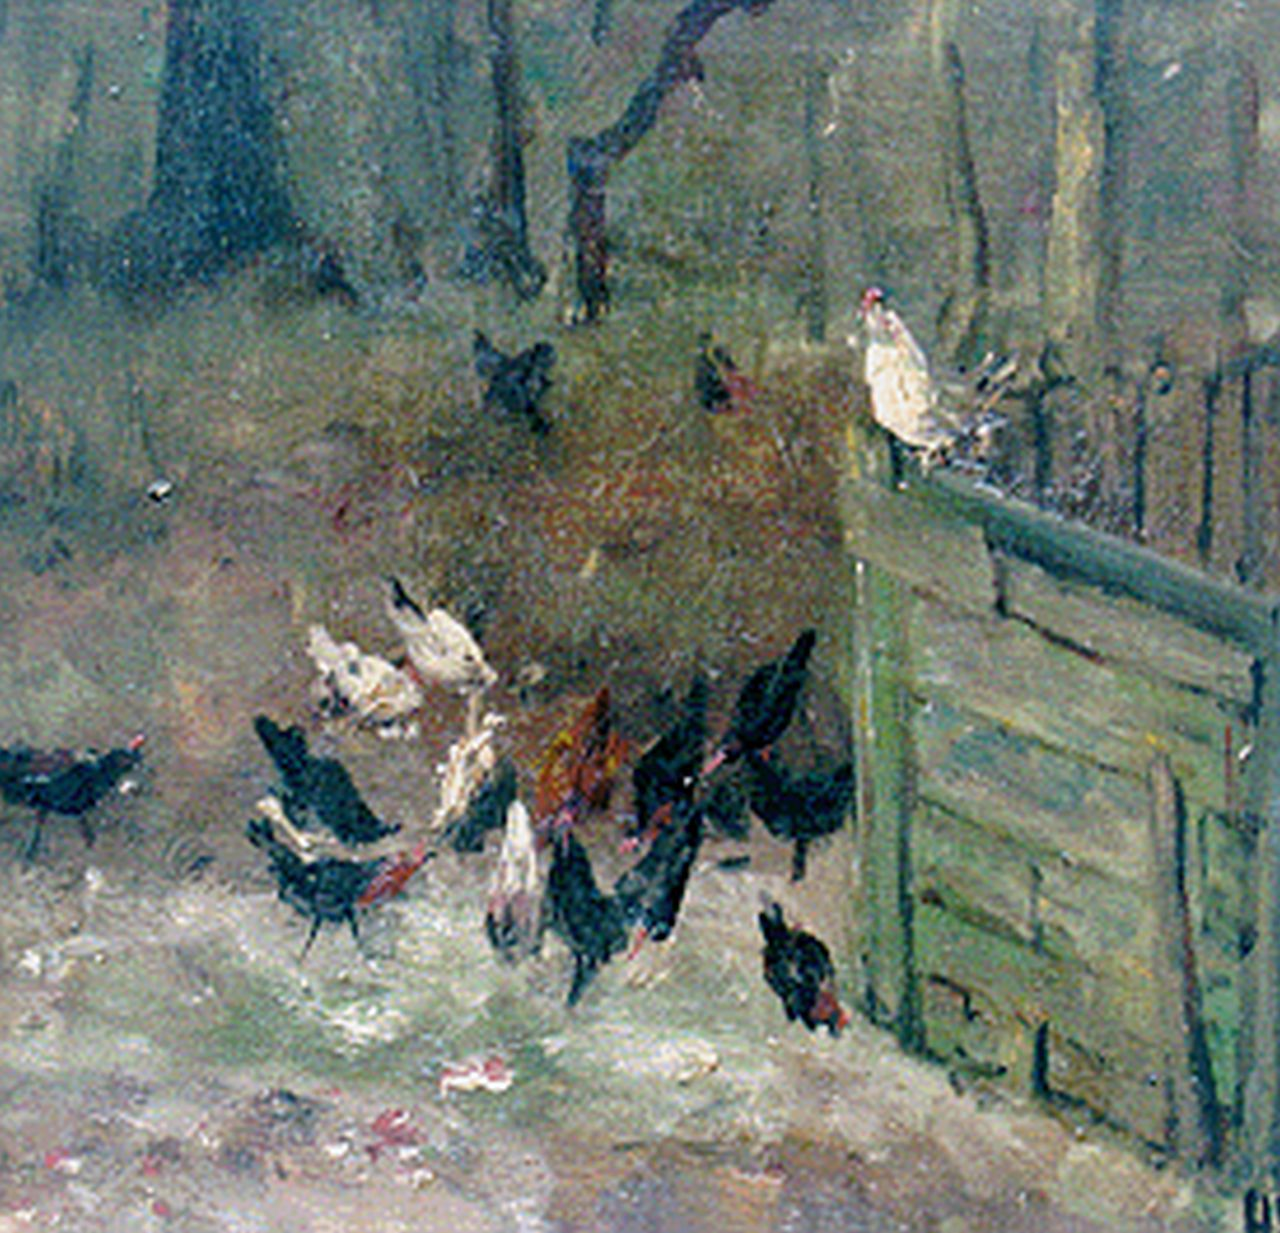 Mesdag H.W.  | Hendrik Willem Mesdag, Chickens on a farmyard, 21.2 x 21.6 cm, signed l.r. with initials